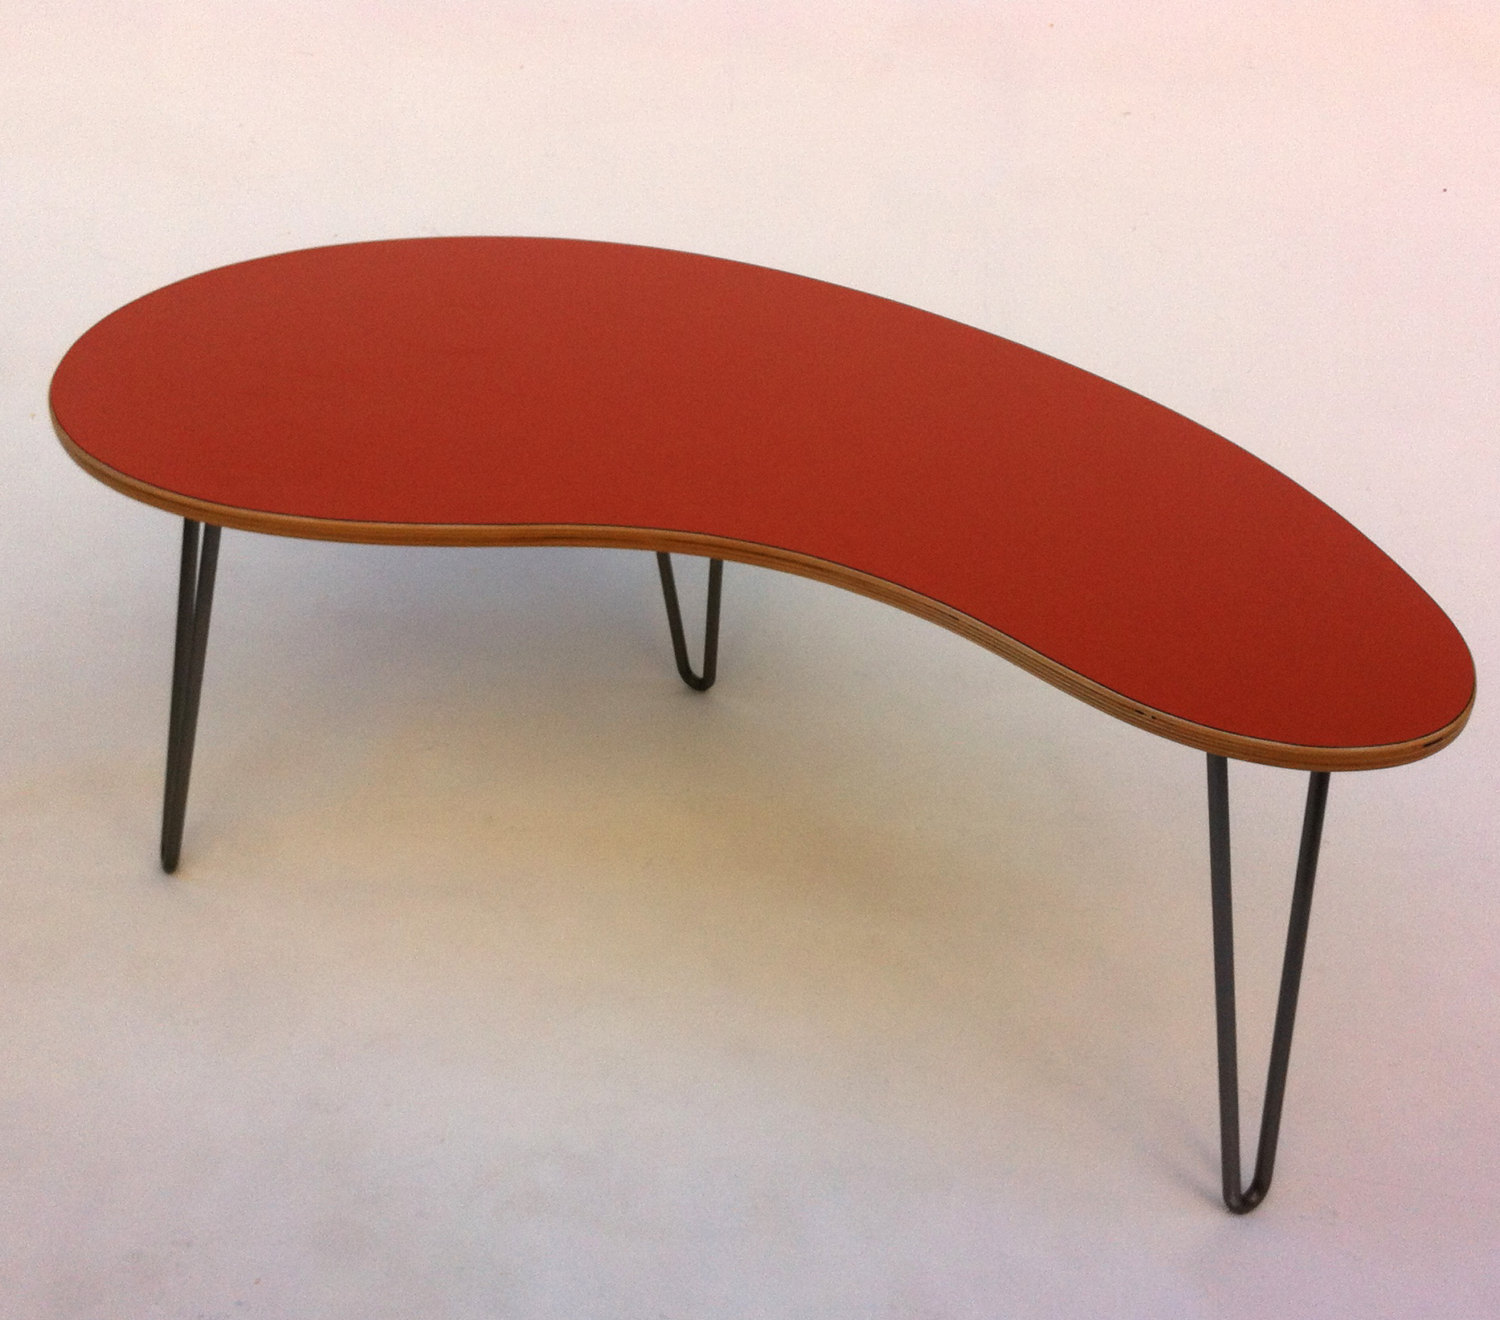 Orange Kidney Bean Shaped Mid Century Modern Coffee Or Cocktail Table Atomic Age